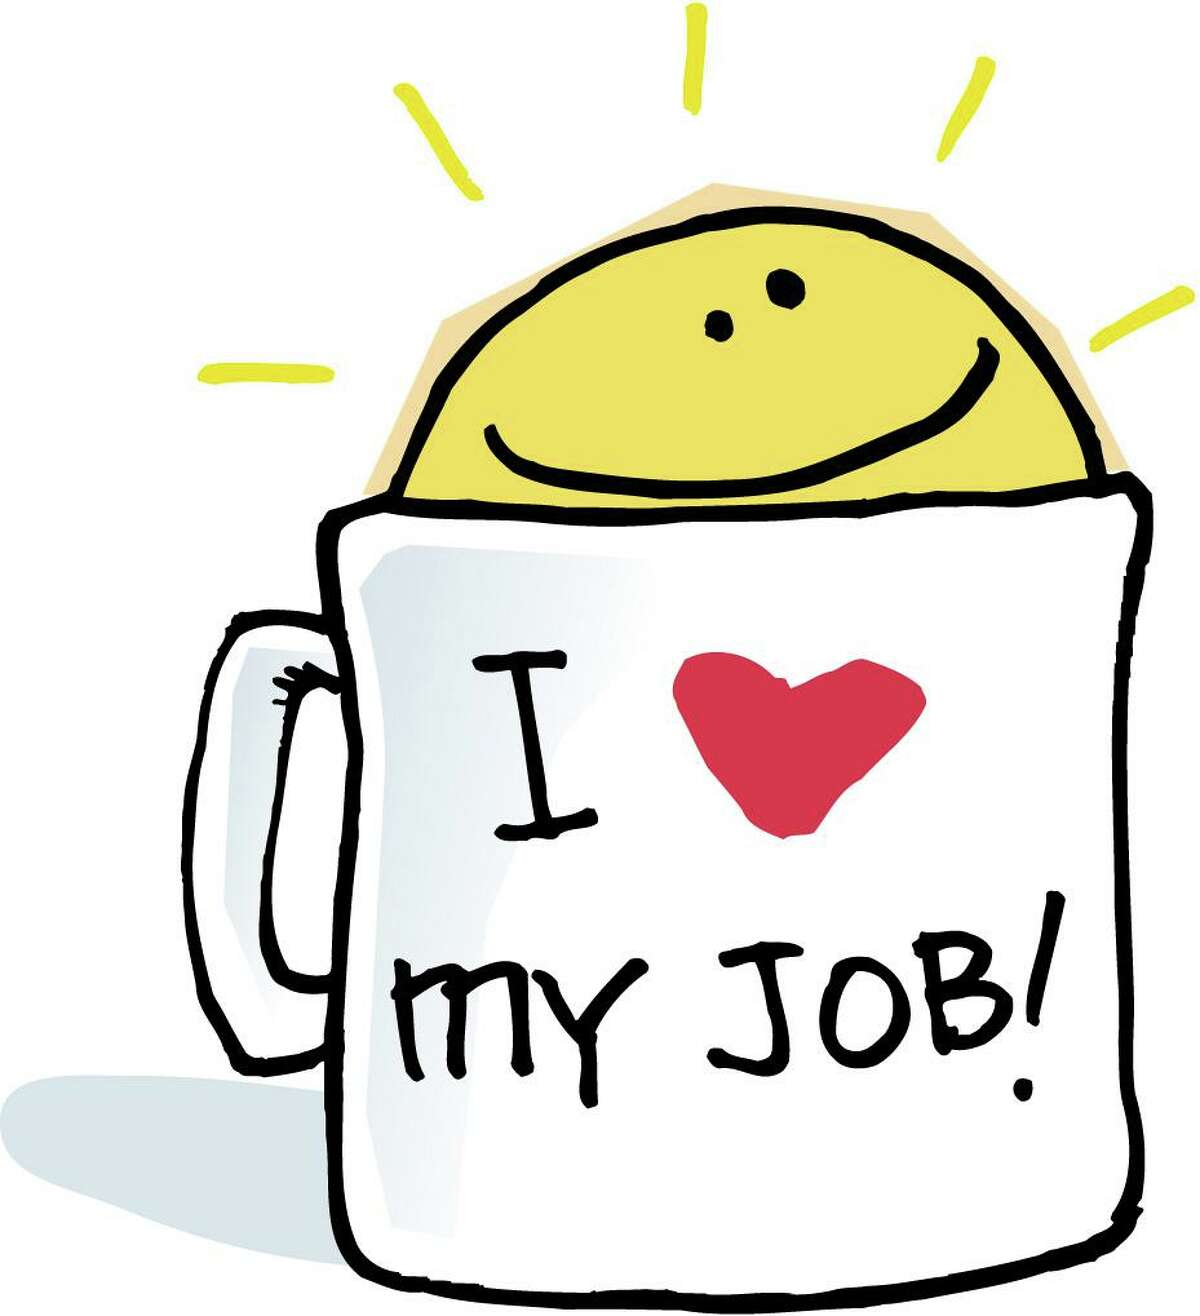 200 dpi 28p x 31p Chris Ware color illustration of a coffee mug labeled I love my job with a happy faced sunshine rising from the top. Lexington Herald-Leader 1998 CATEGORY: ILLUSTRATION SUBJECT: Happy cup ILLUS.jpg ARTIST: Chris Ware ORIGIN: Lexington Herald-Leader TYPE: JPEG SIZE: As needed ENTERED: 11/19/98 STORY SLUG: Stand-alone